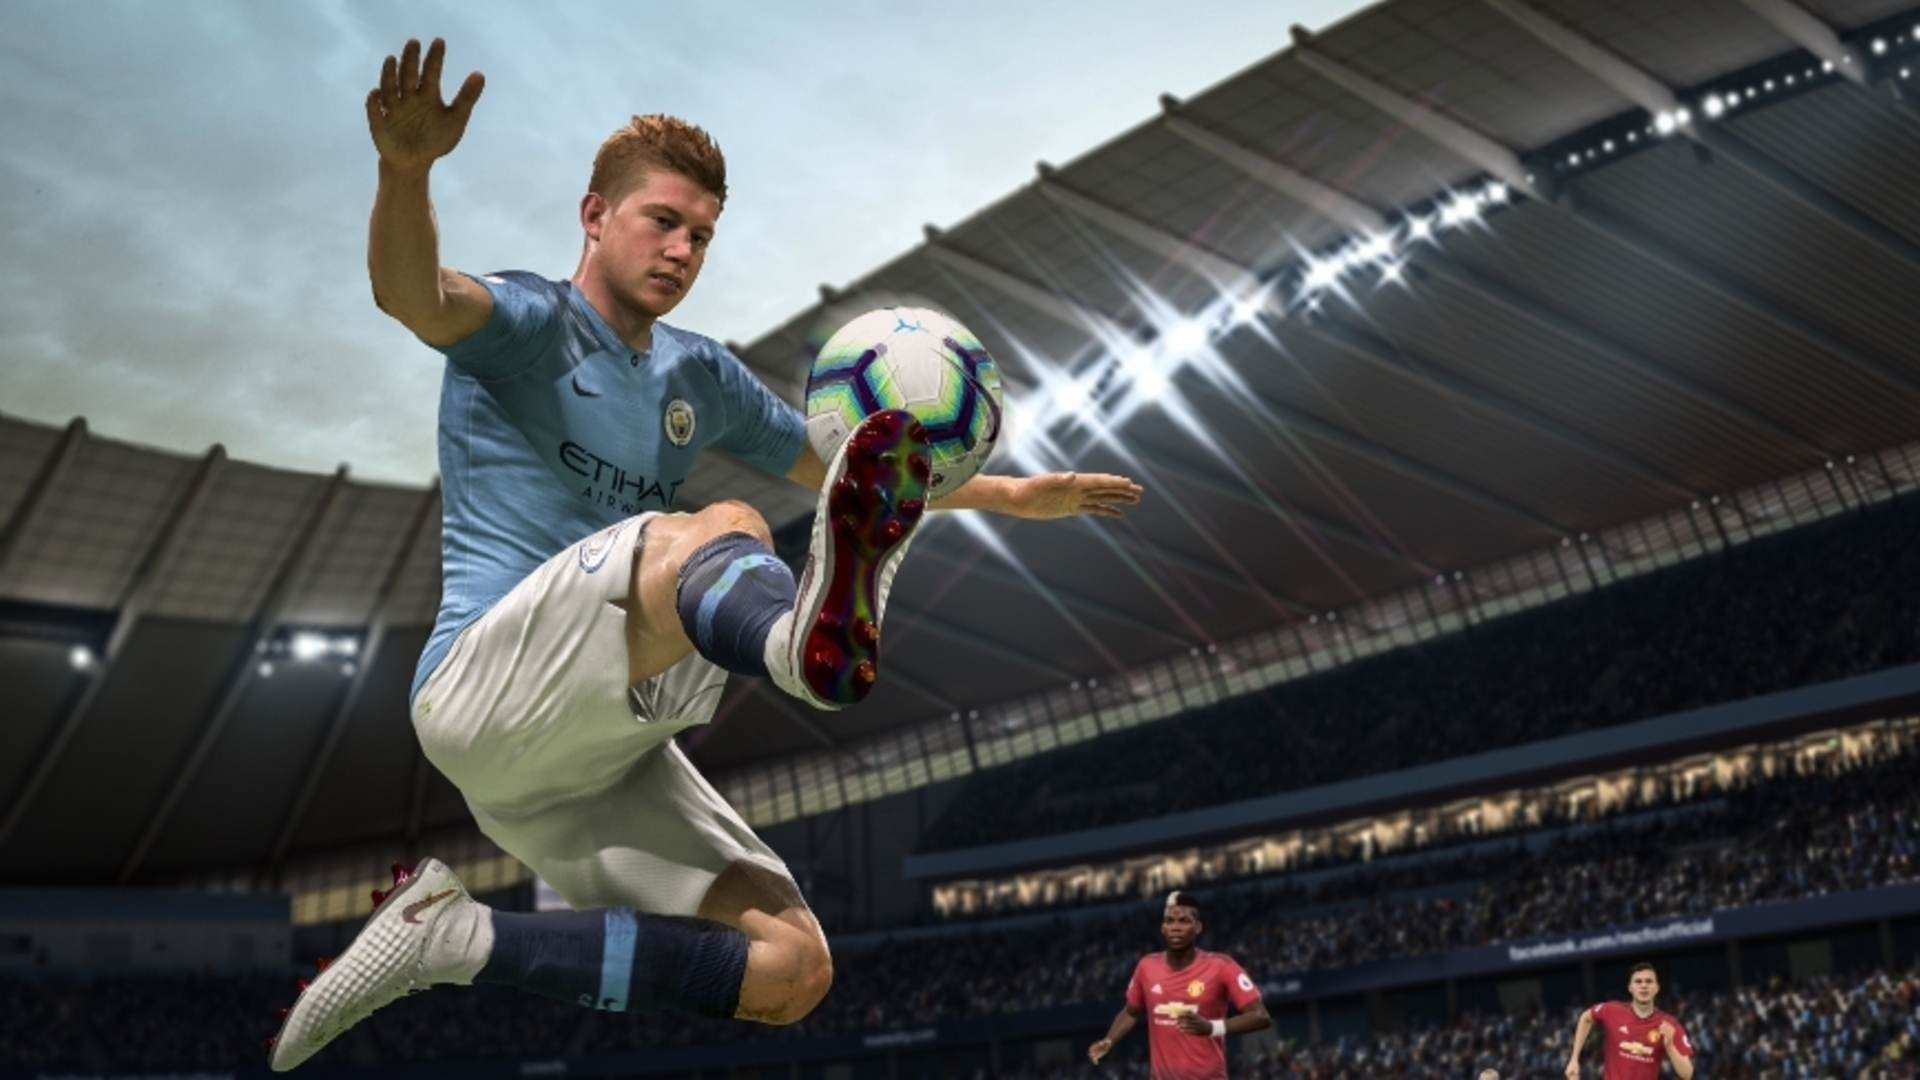 FIFA 19 Gameplay Is All About The Animations • Eurogamer.net